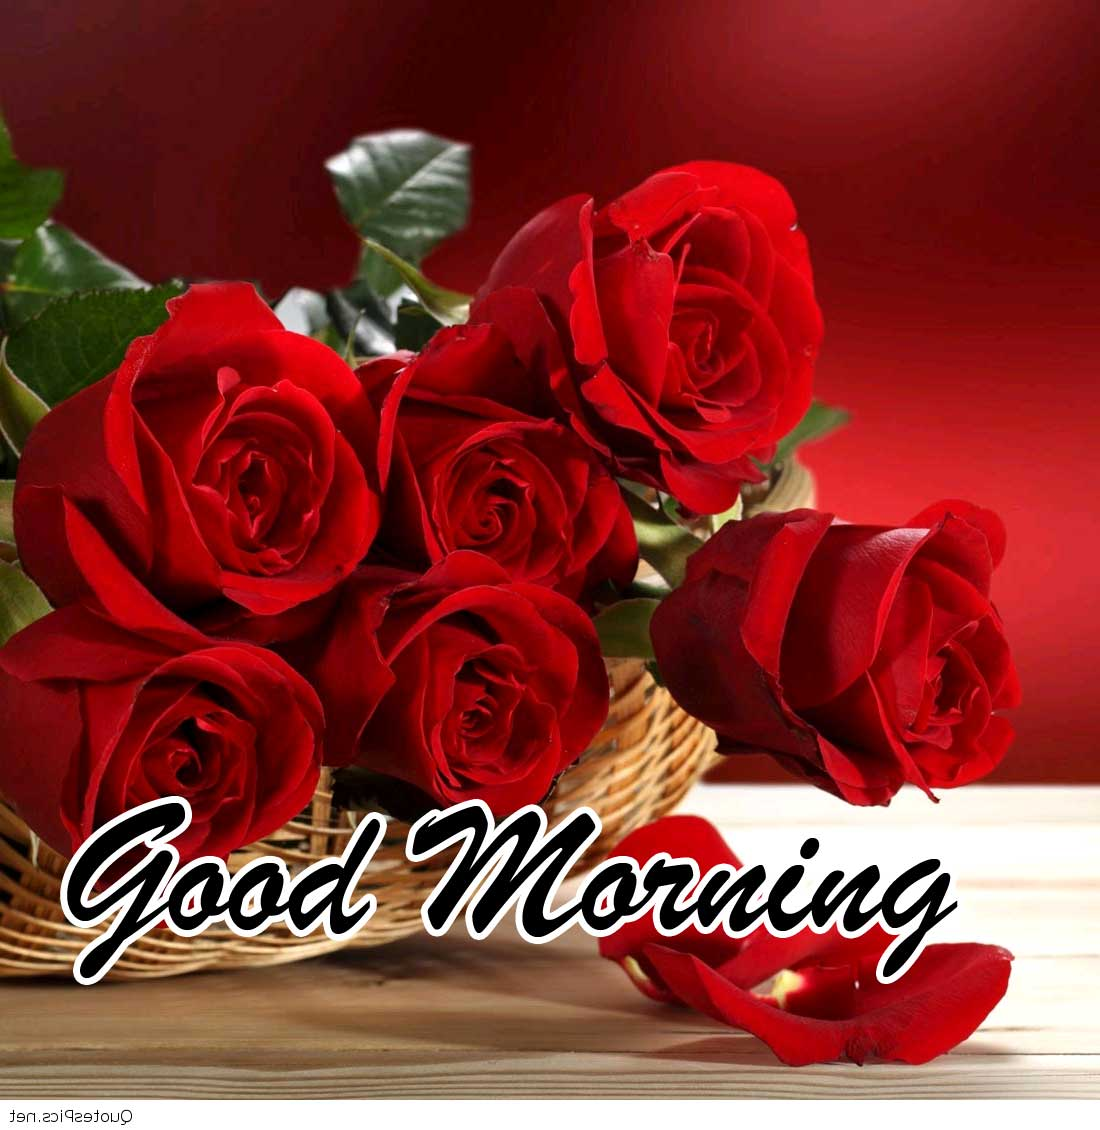 Beautiful Red Rose Good Morning Pics Download & Share